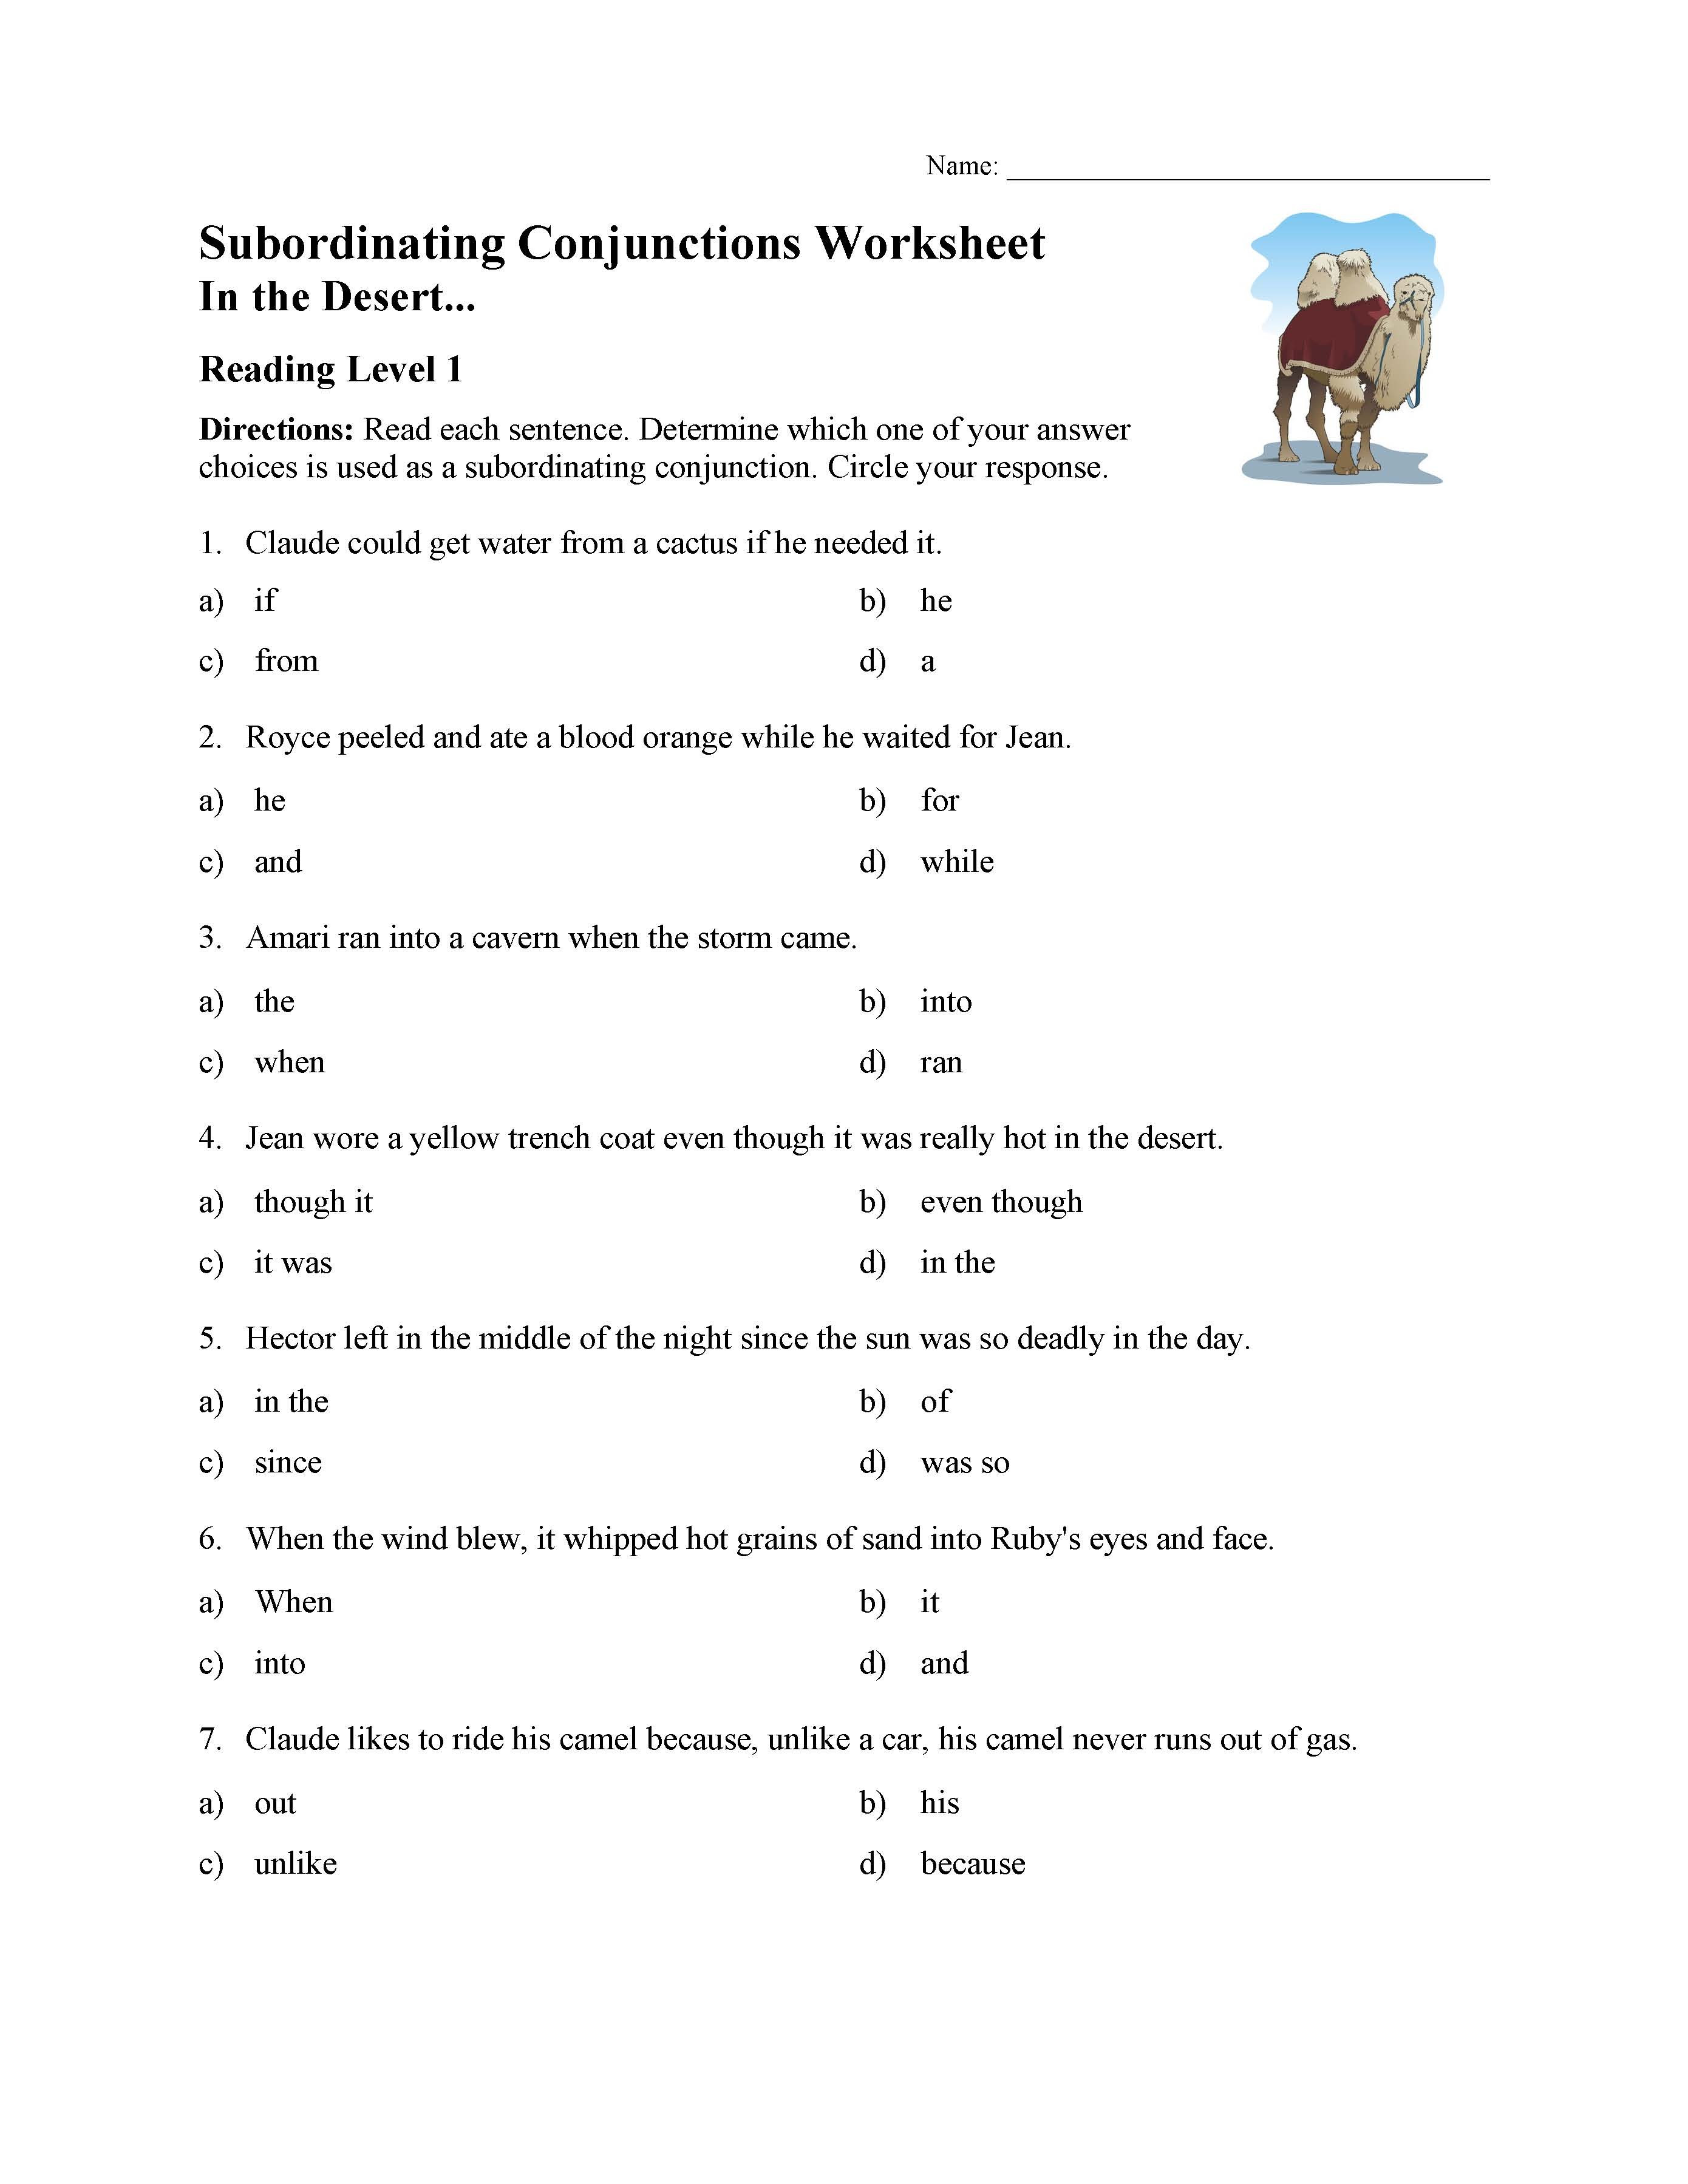 Conjunctions Worksheet 5th Grade Subordinating Conjunctions Worksheet Reading Level 1